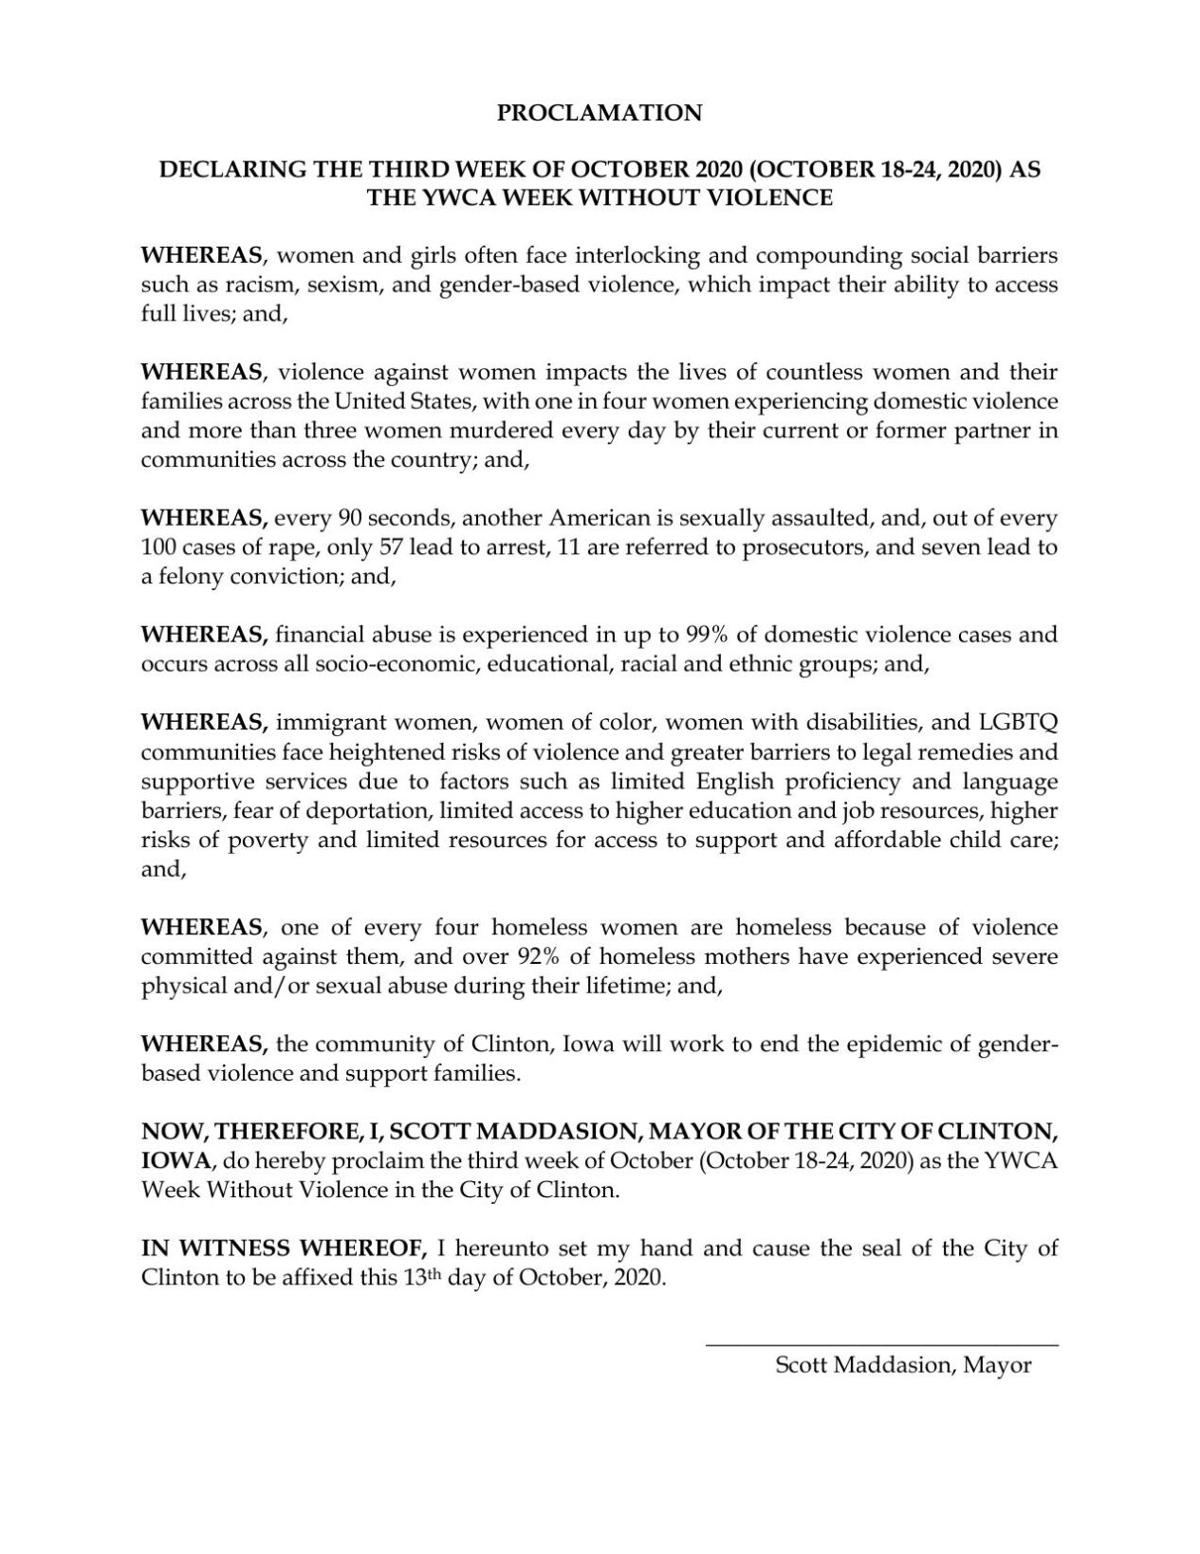 Week Without Violence Proclamation